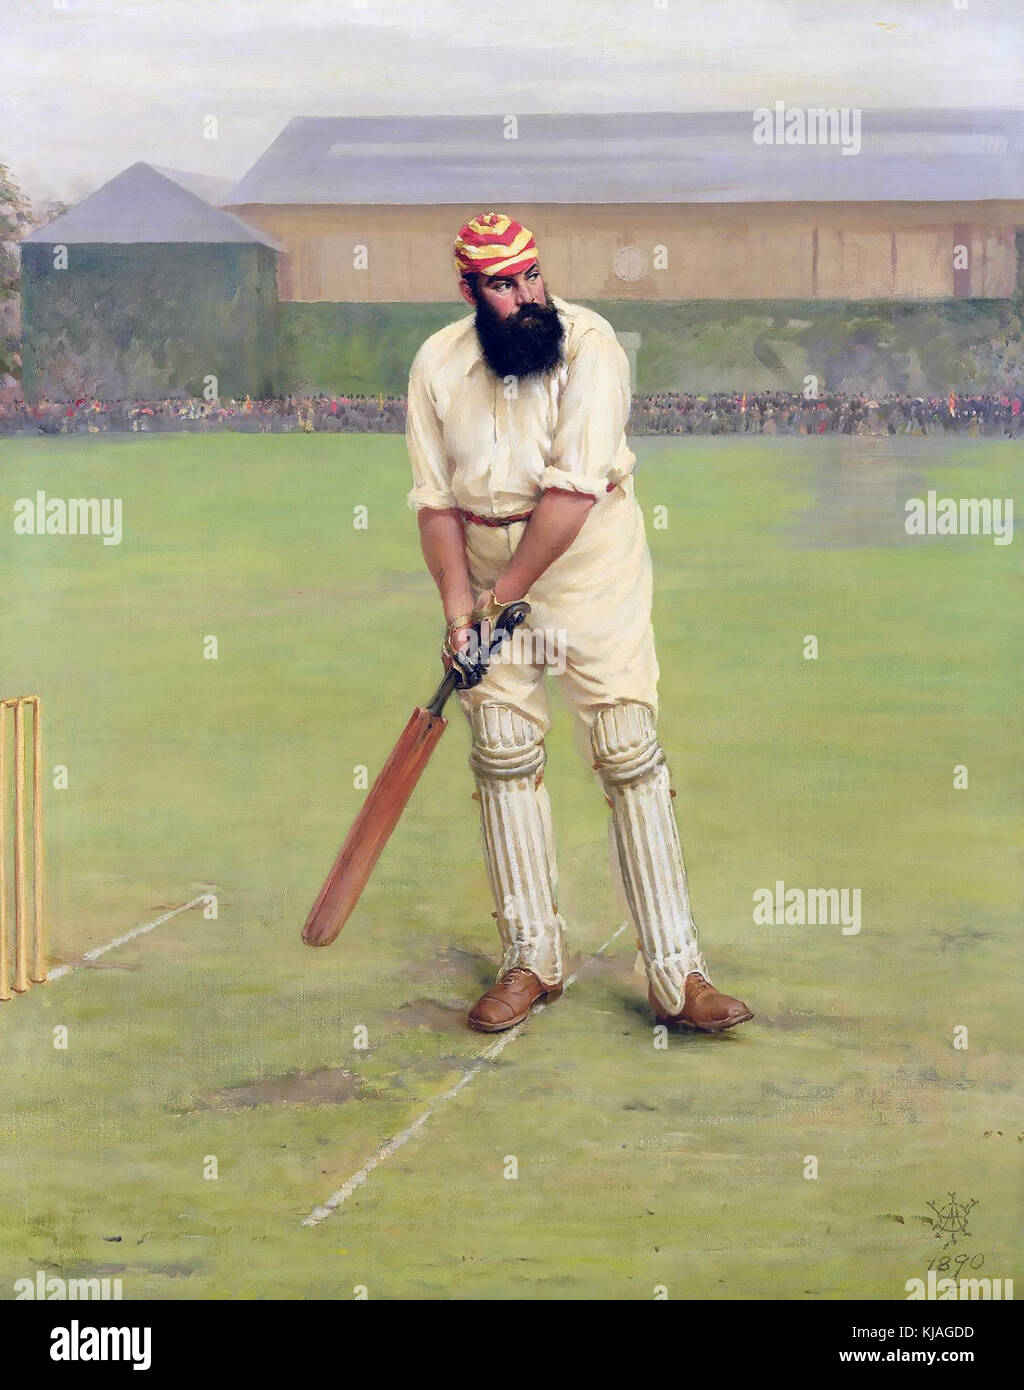 W.G.GRACE (1848-1915) English cricketer in 1890 in the cap colours of the Marylebone Cricket Club - Stock Image